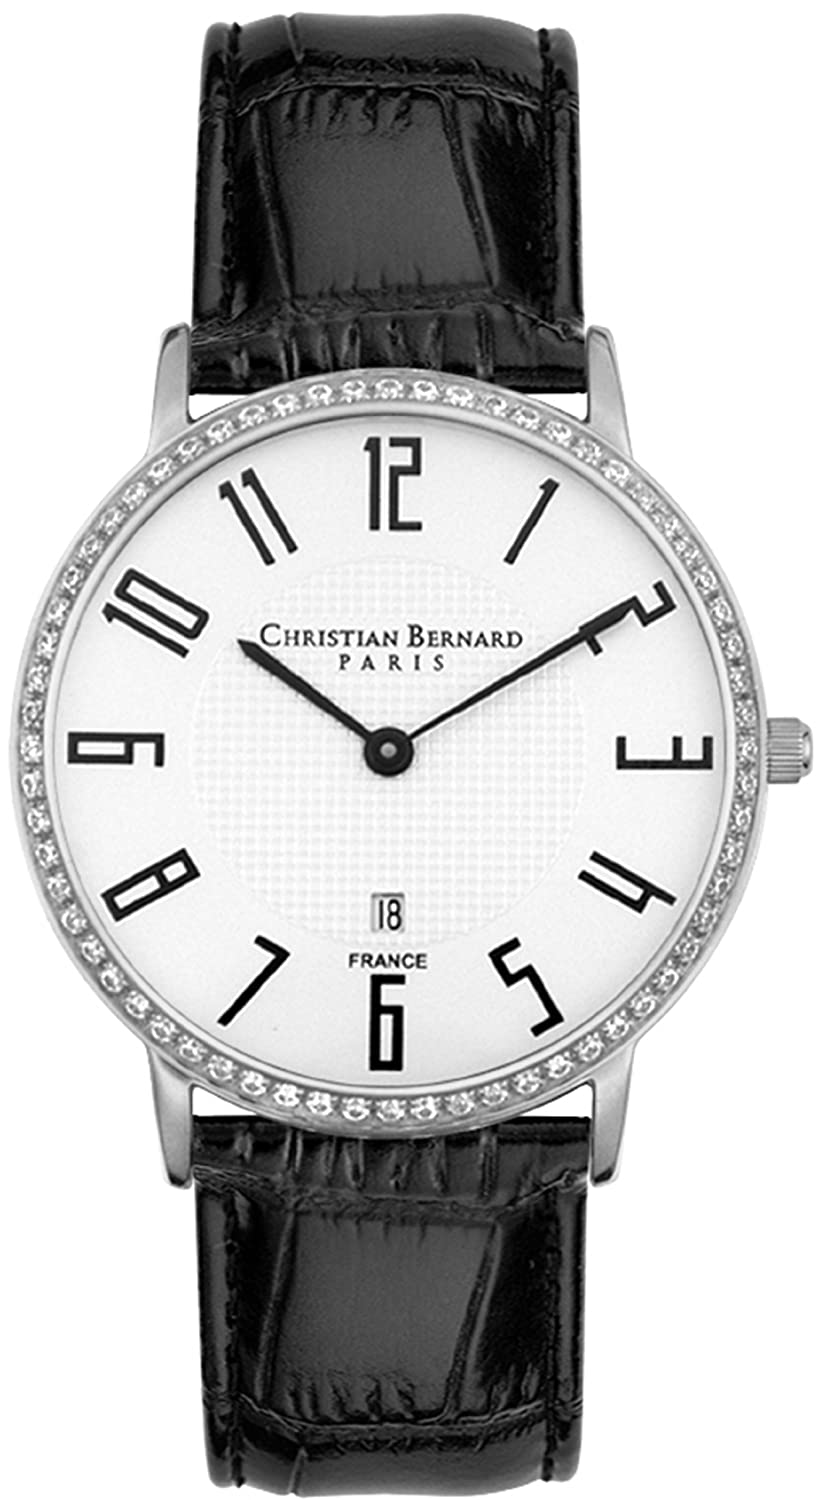 Amazon.com: Christian Bernard Mens Slimlight Watch IA339ZBV: Christian Bernard: Watches